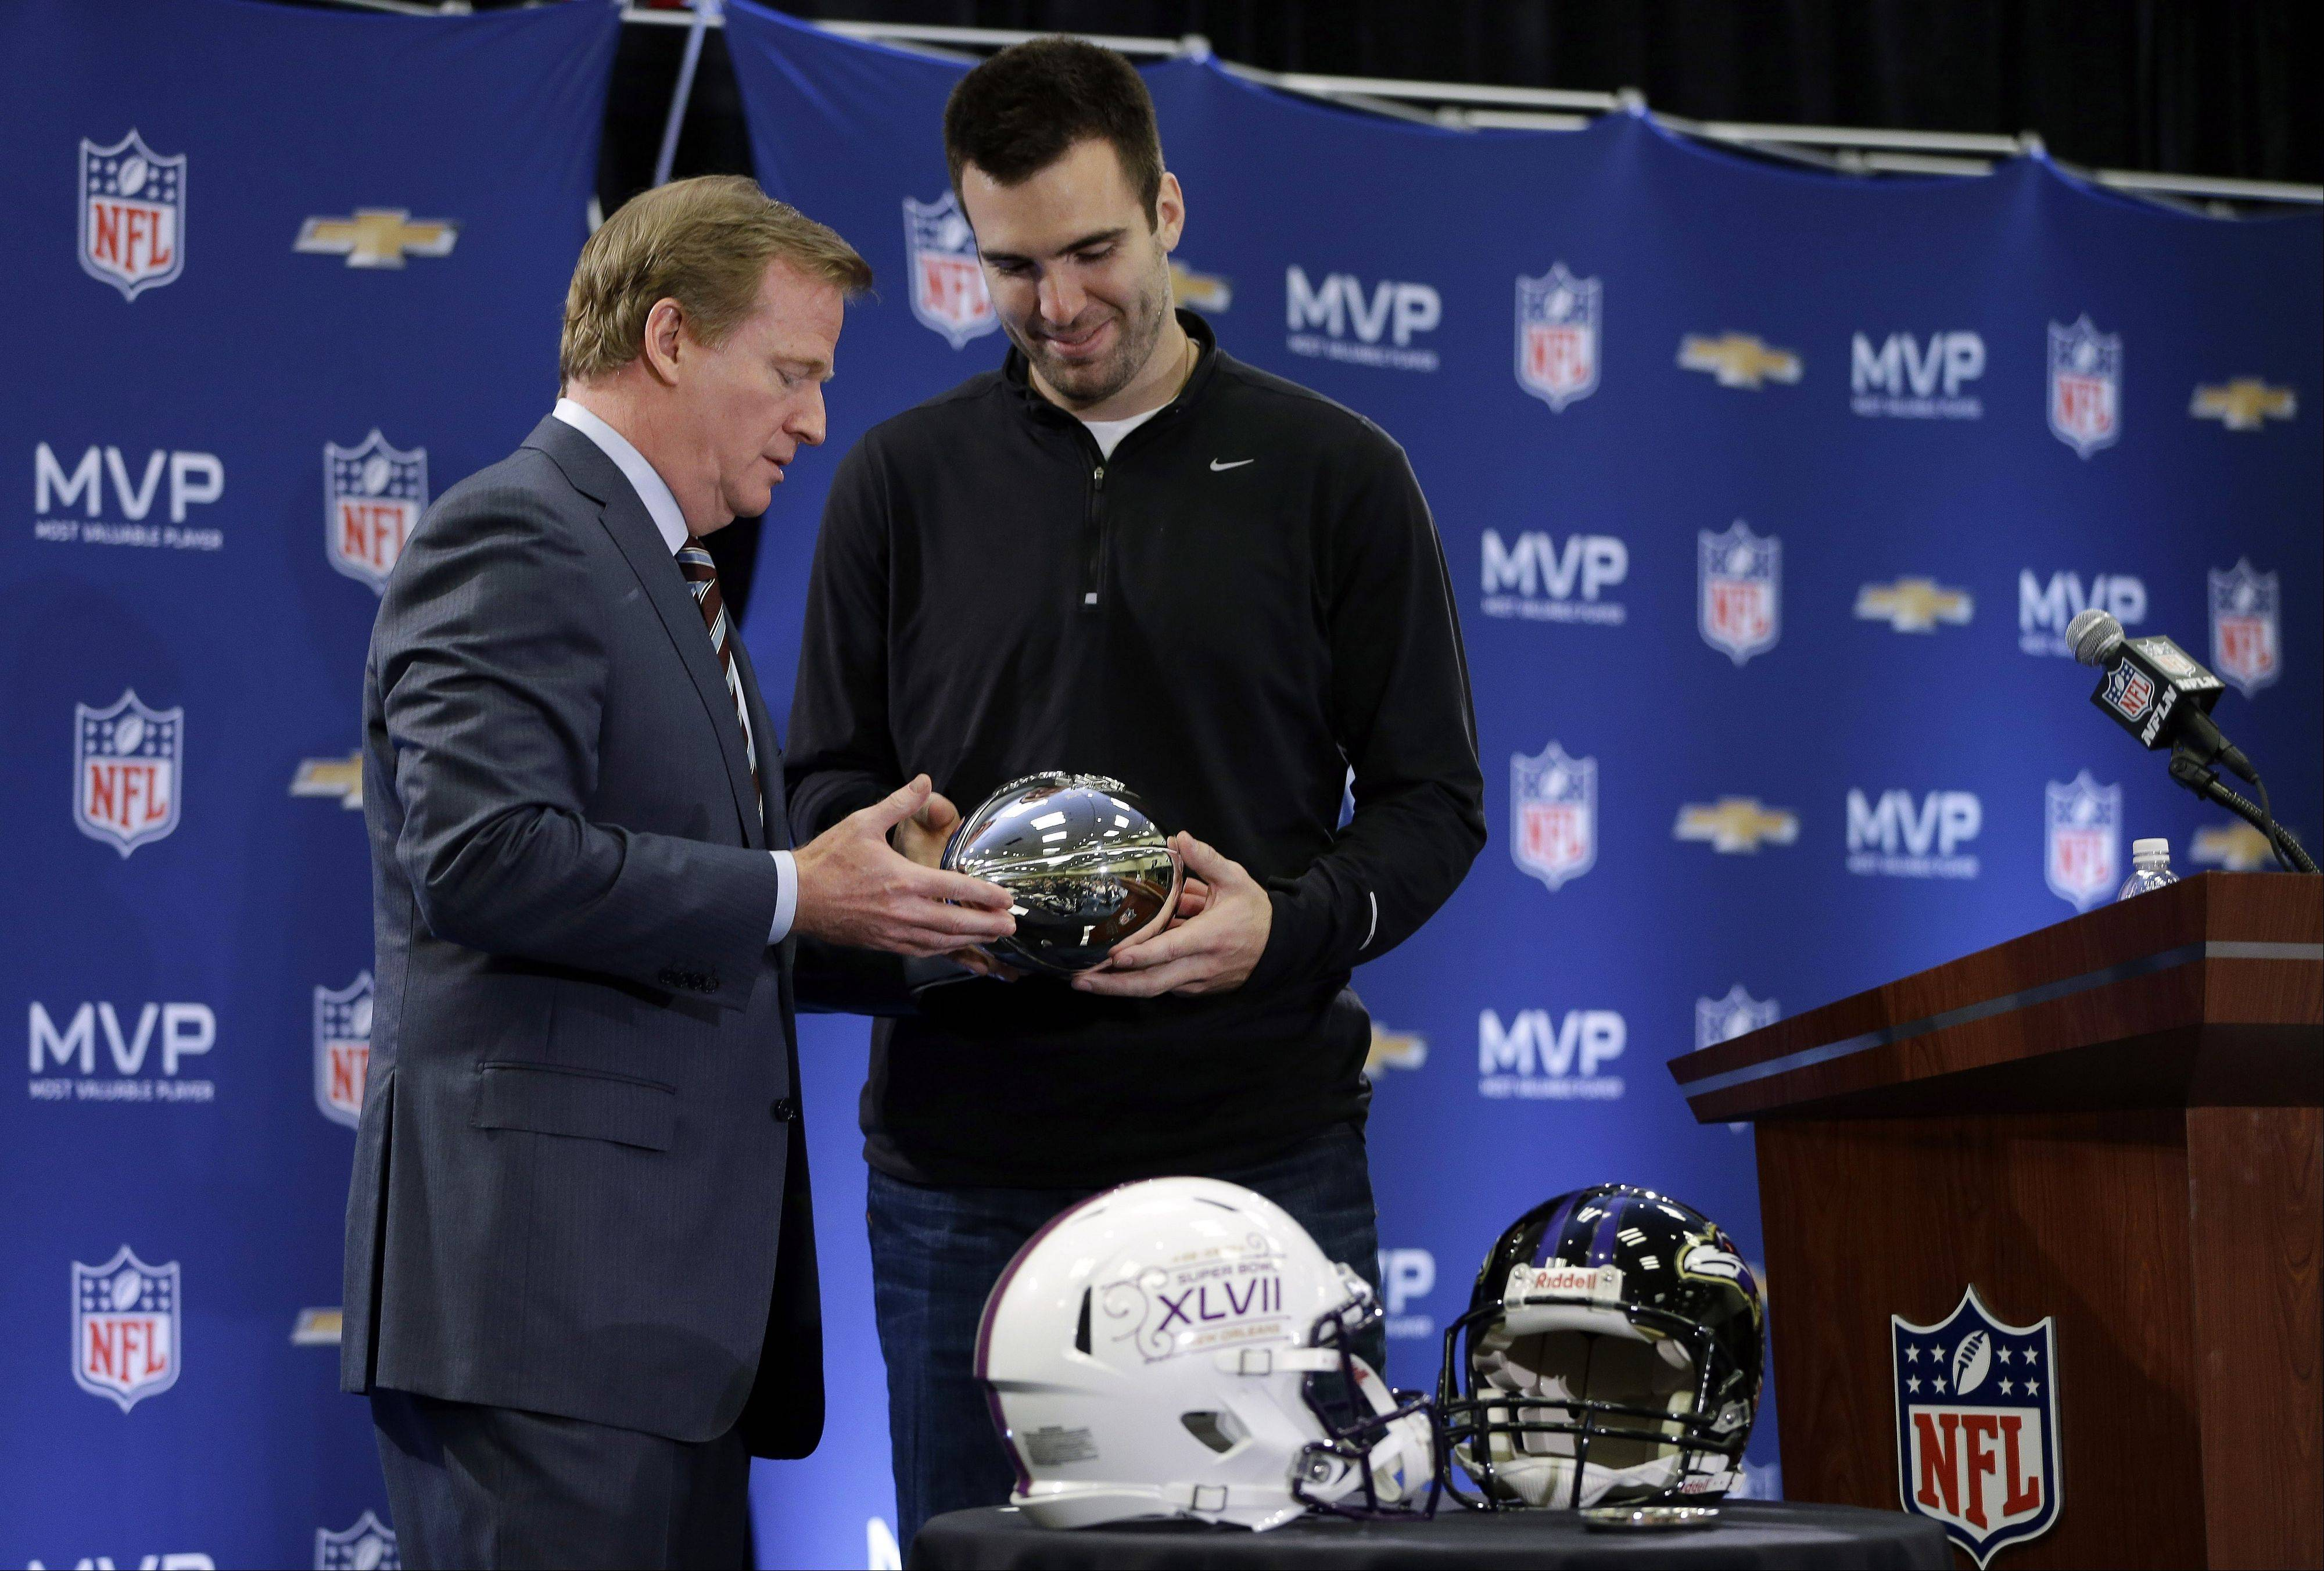 NFL Commissioner Roger Goodell hands the MVP trophy to Baltimore Ravens quarterback Joe Flacco at a news conference Monday after Super Bowl XLVII in New Orleans. The Ravens defeated the San Francisco 49ers 34-31.